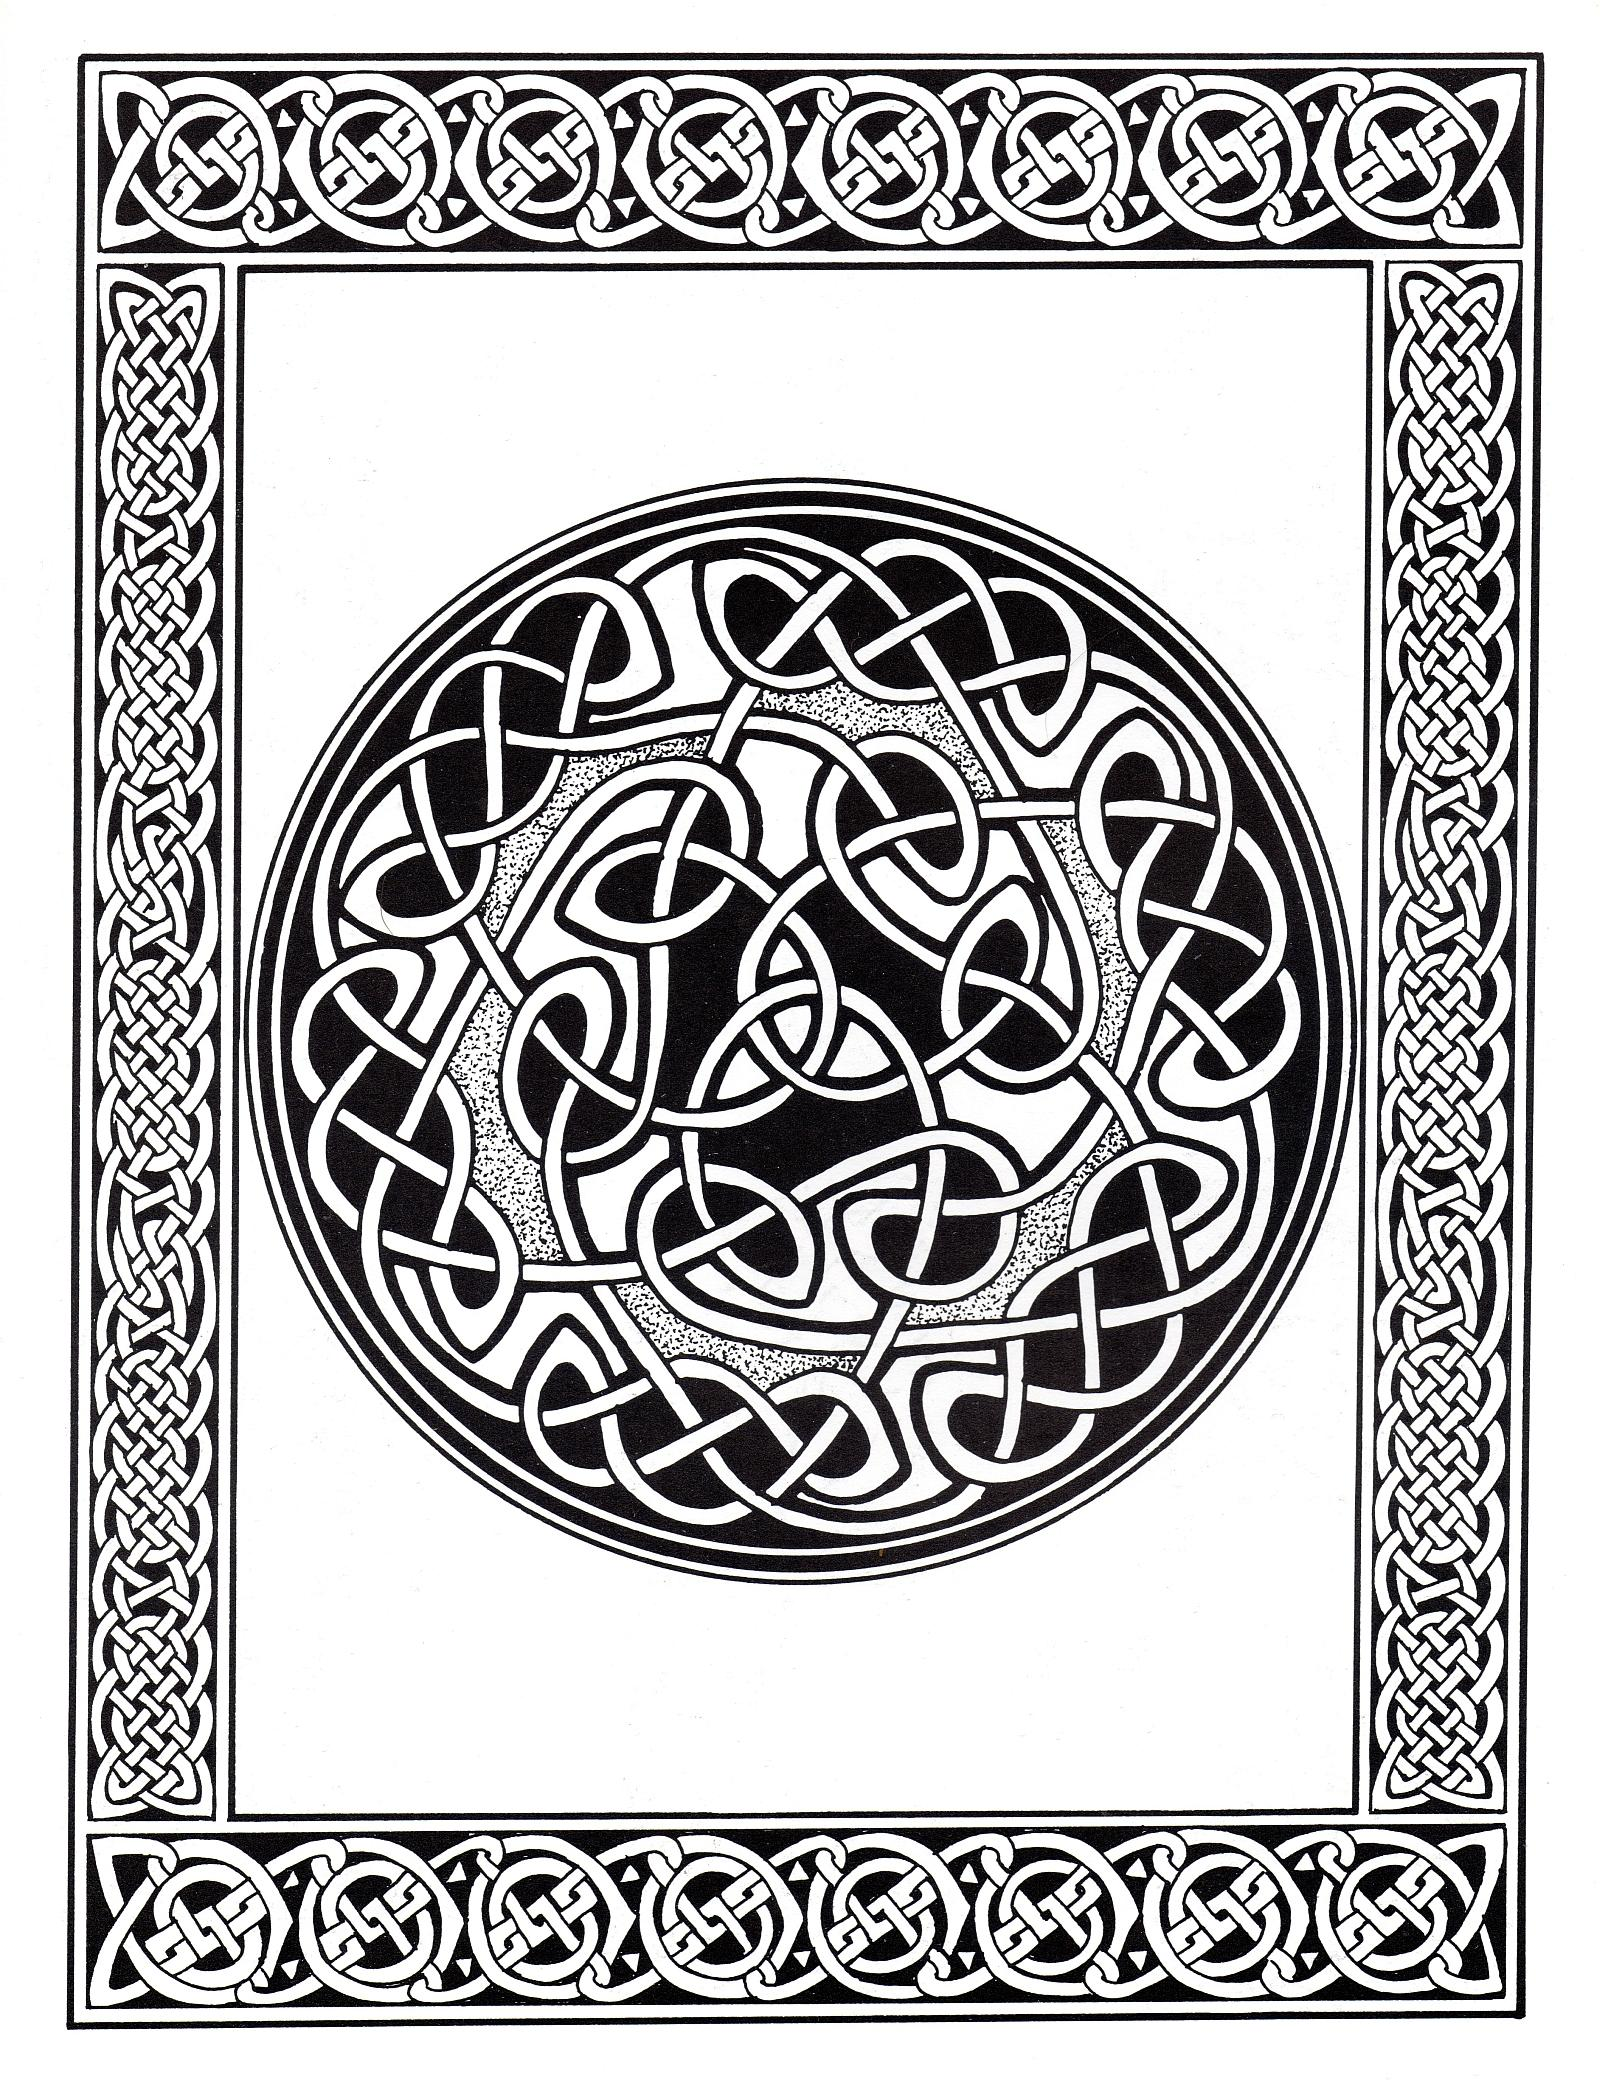 Celtic art design looking like a Mandala, with a border with patterns